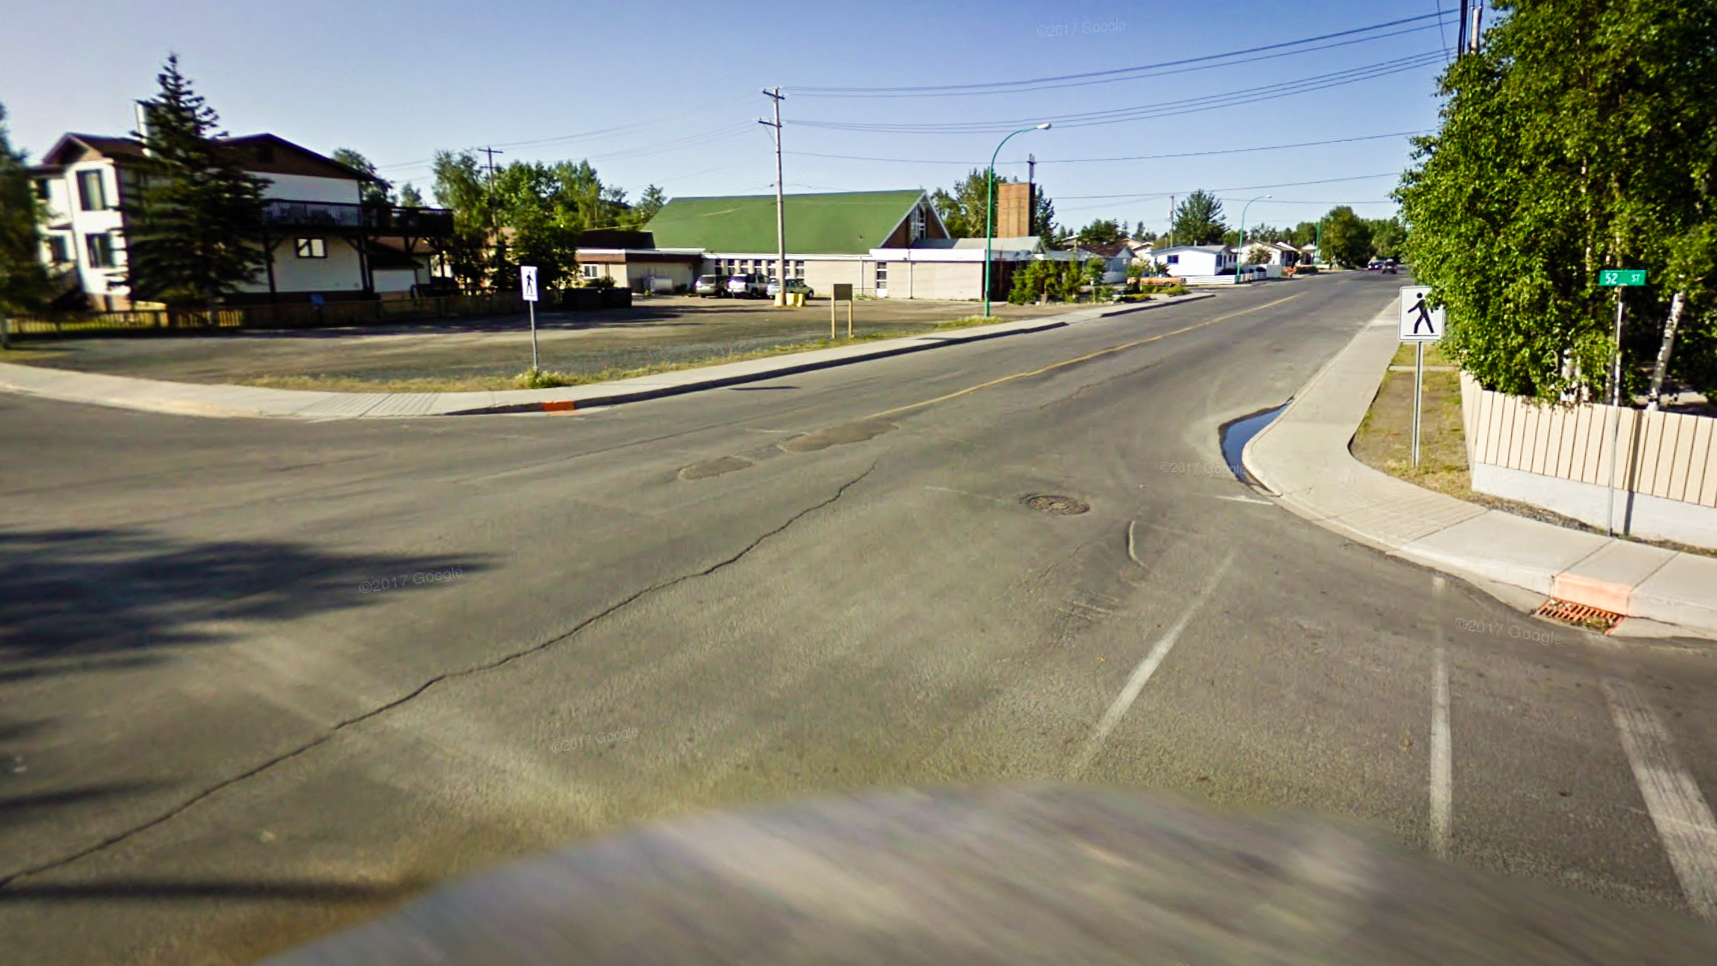 Google Streetview rendering of the intersection between Yellowknife's 52 St and 52 Ave